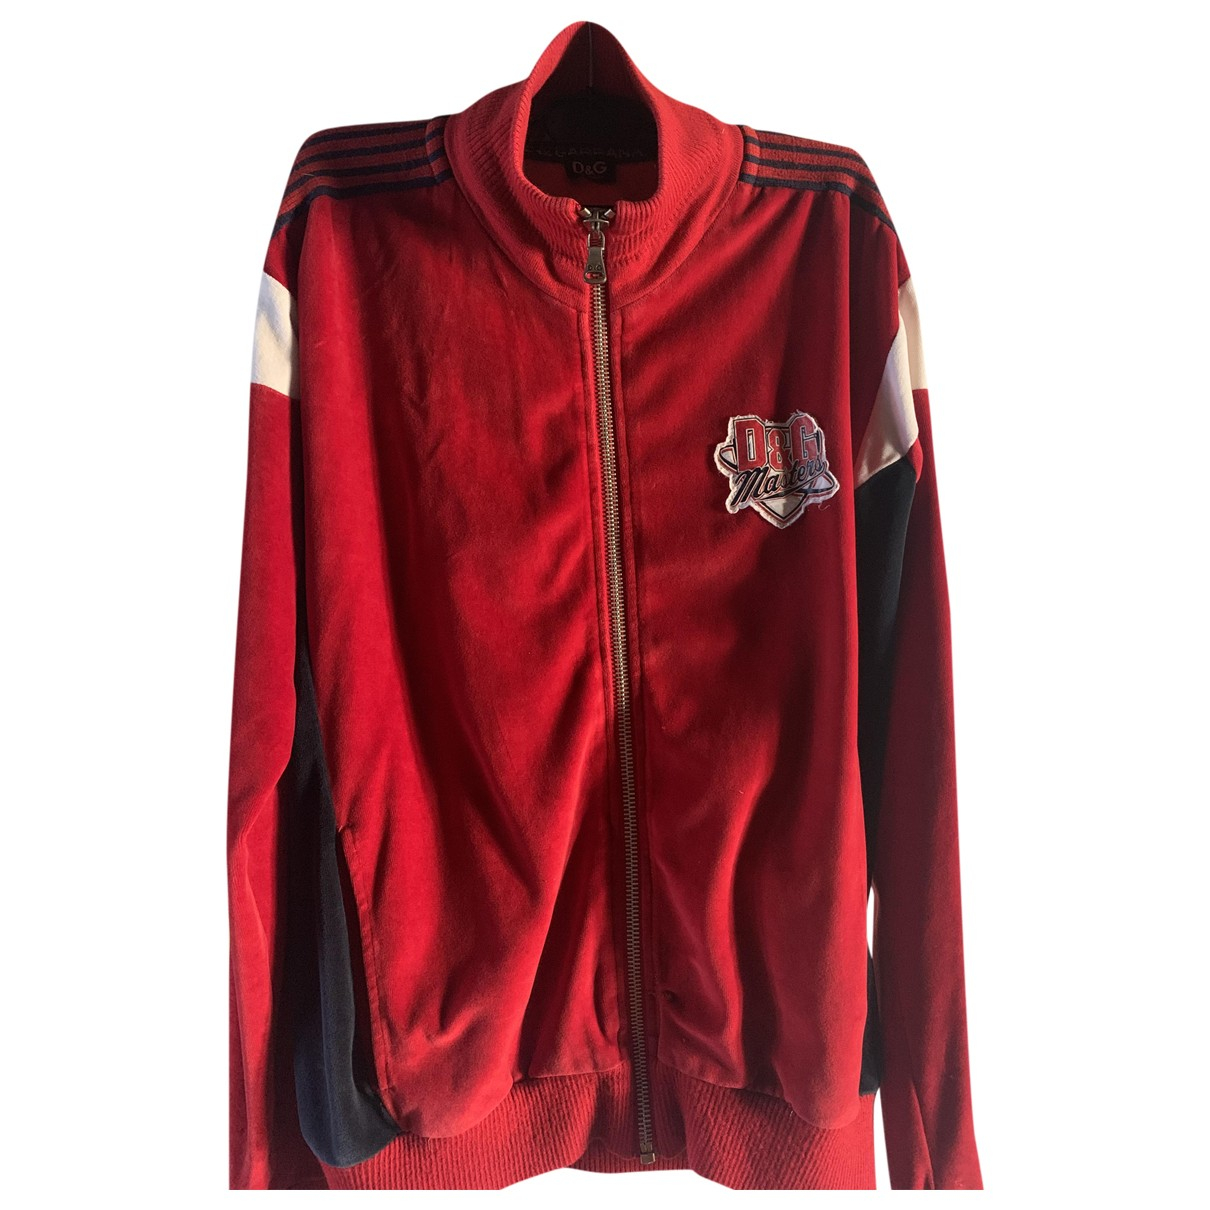 D&g \N Red Knitwear & Sweatshirts for Men L International